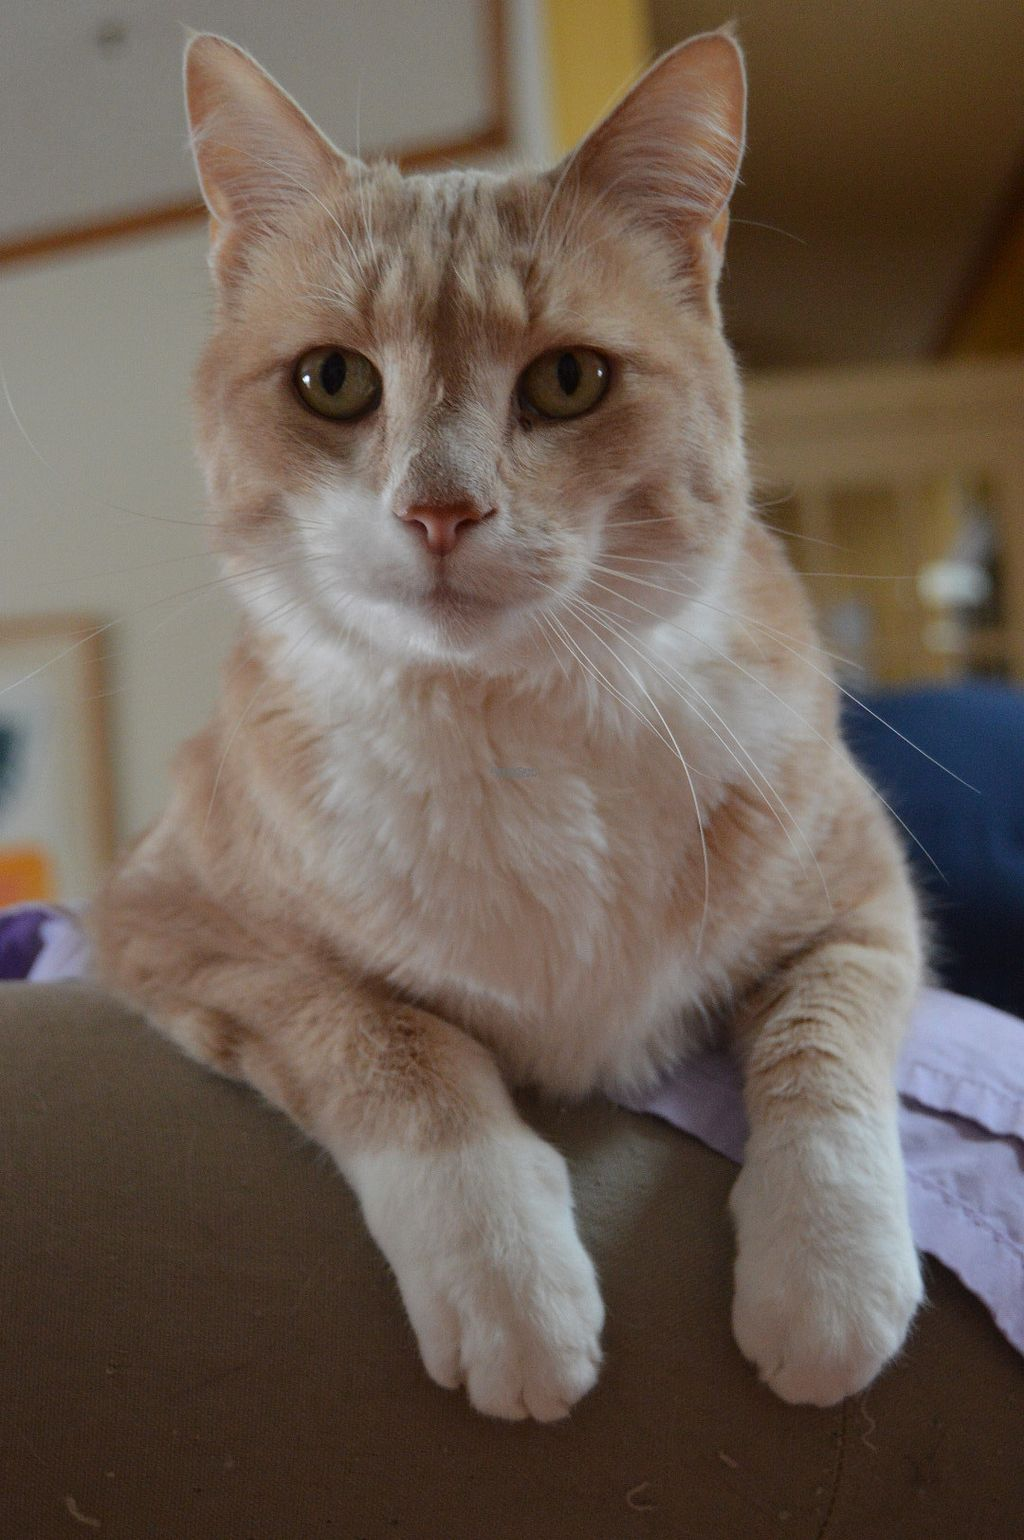 """Photo of The Ginger Cat B and B  by <a href=""""/members/profile/Vegan%20GiGi"""">Vegan GiGi</a> <br/>Gita's sweet ginger cat <br/> September 3, 2016  - <a href='/contact/abuse/image/30660/173153'>Report</a>"""